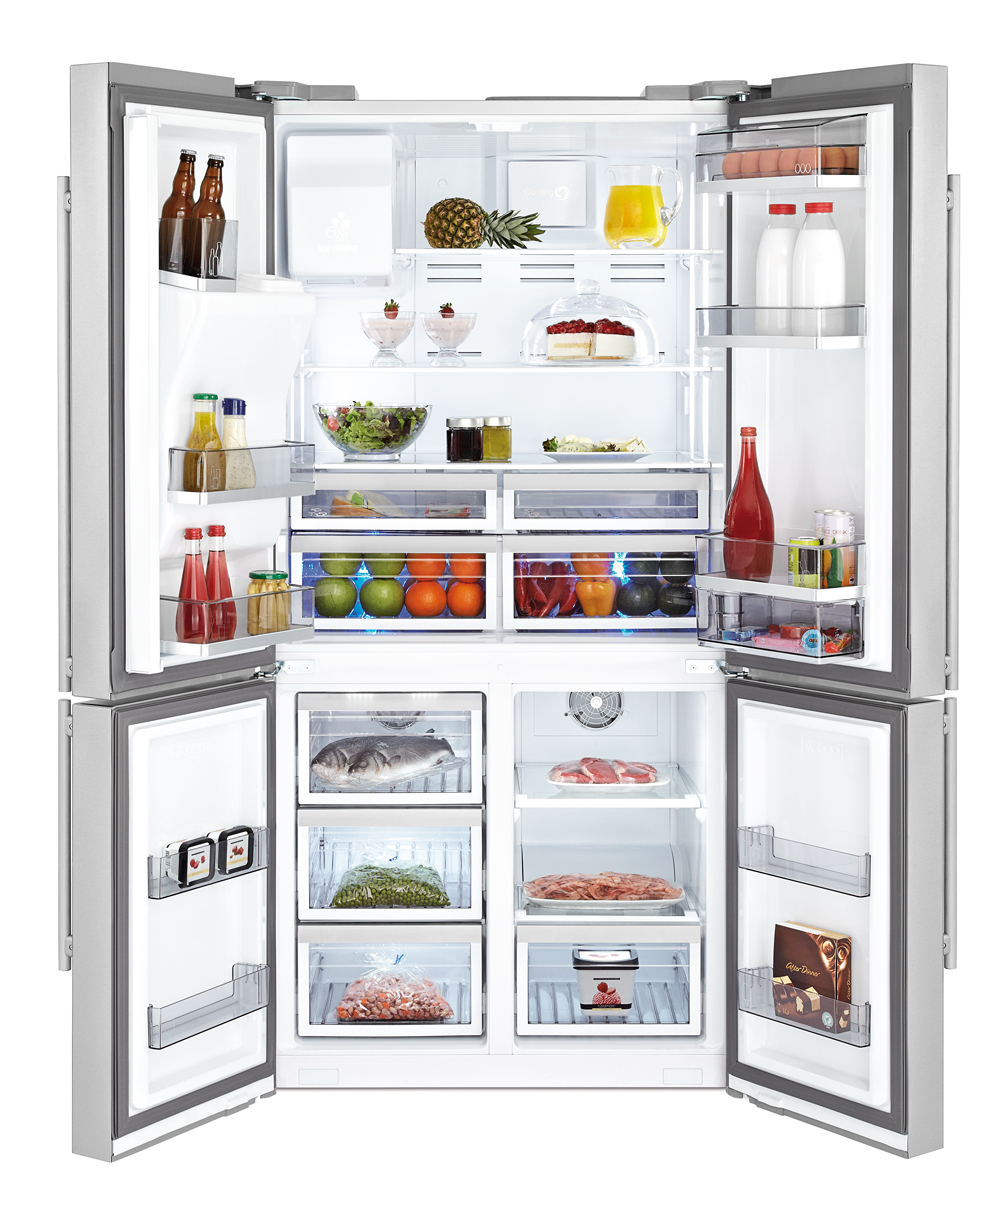 blomberg introduces the sedan of remodeling appliances kitchen blomberg appliances